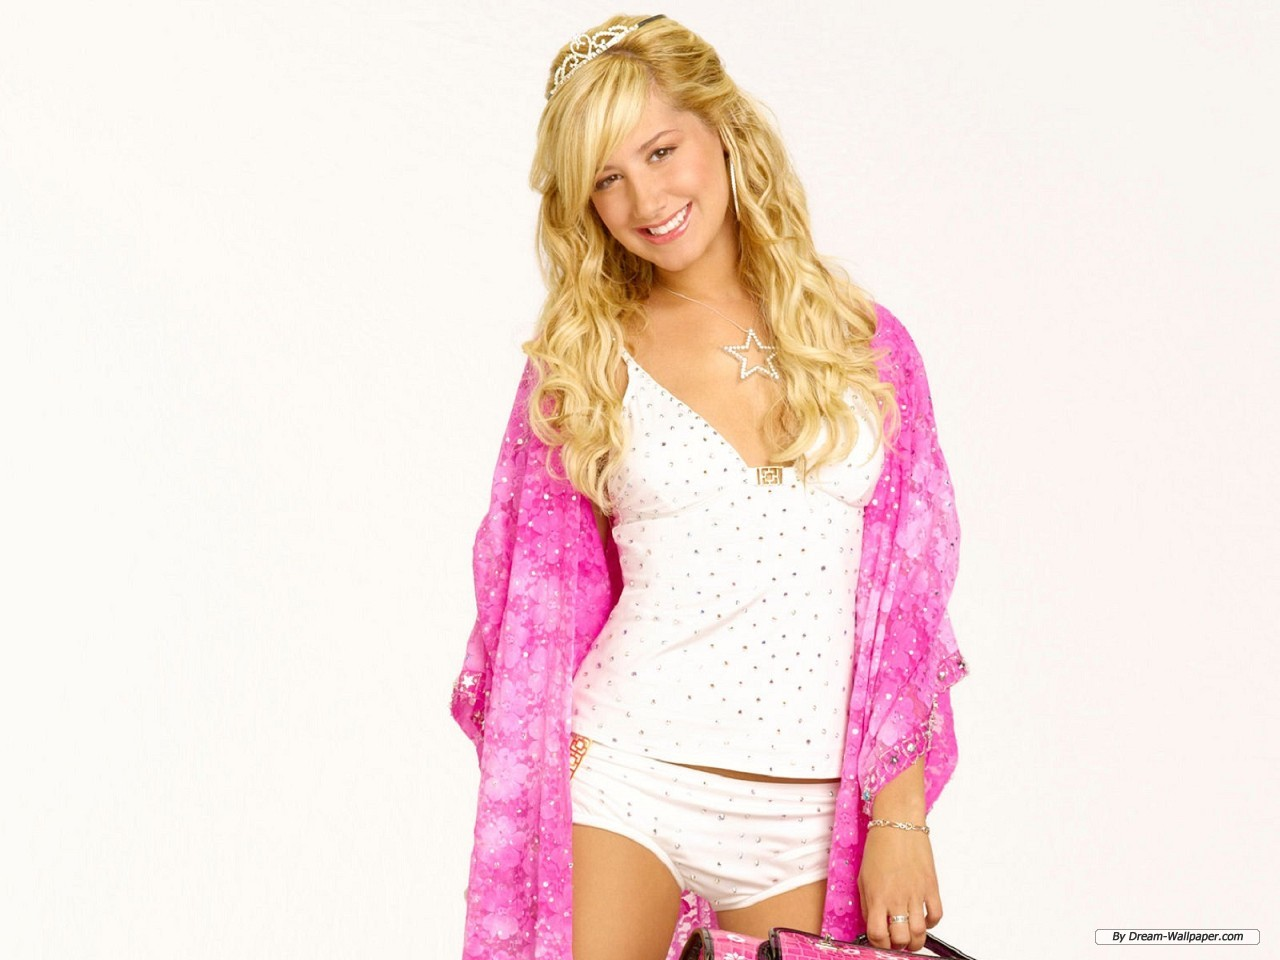 1280x960 - Ashley Tisdale Wallpapers 22